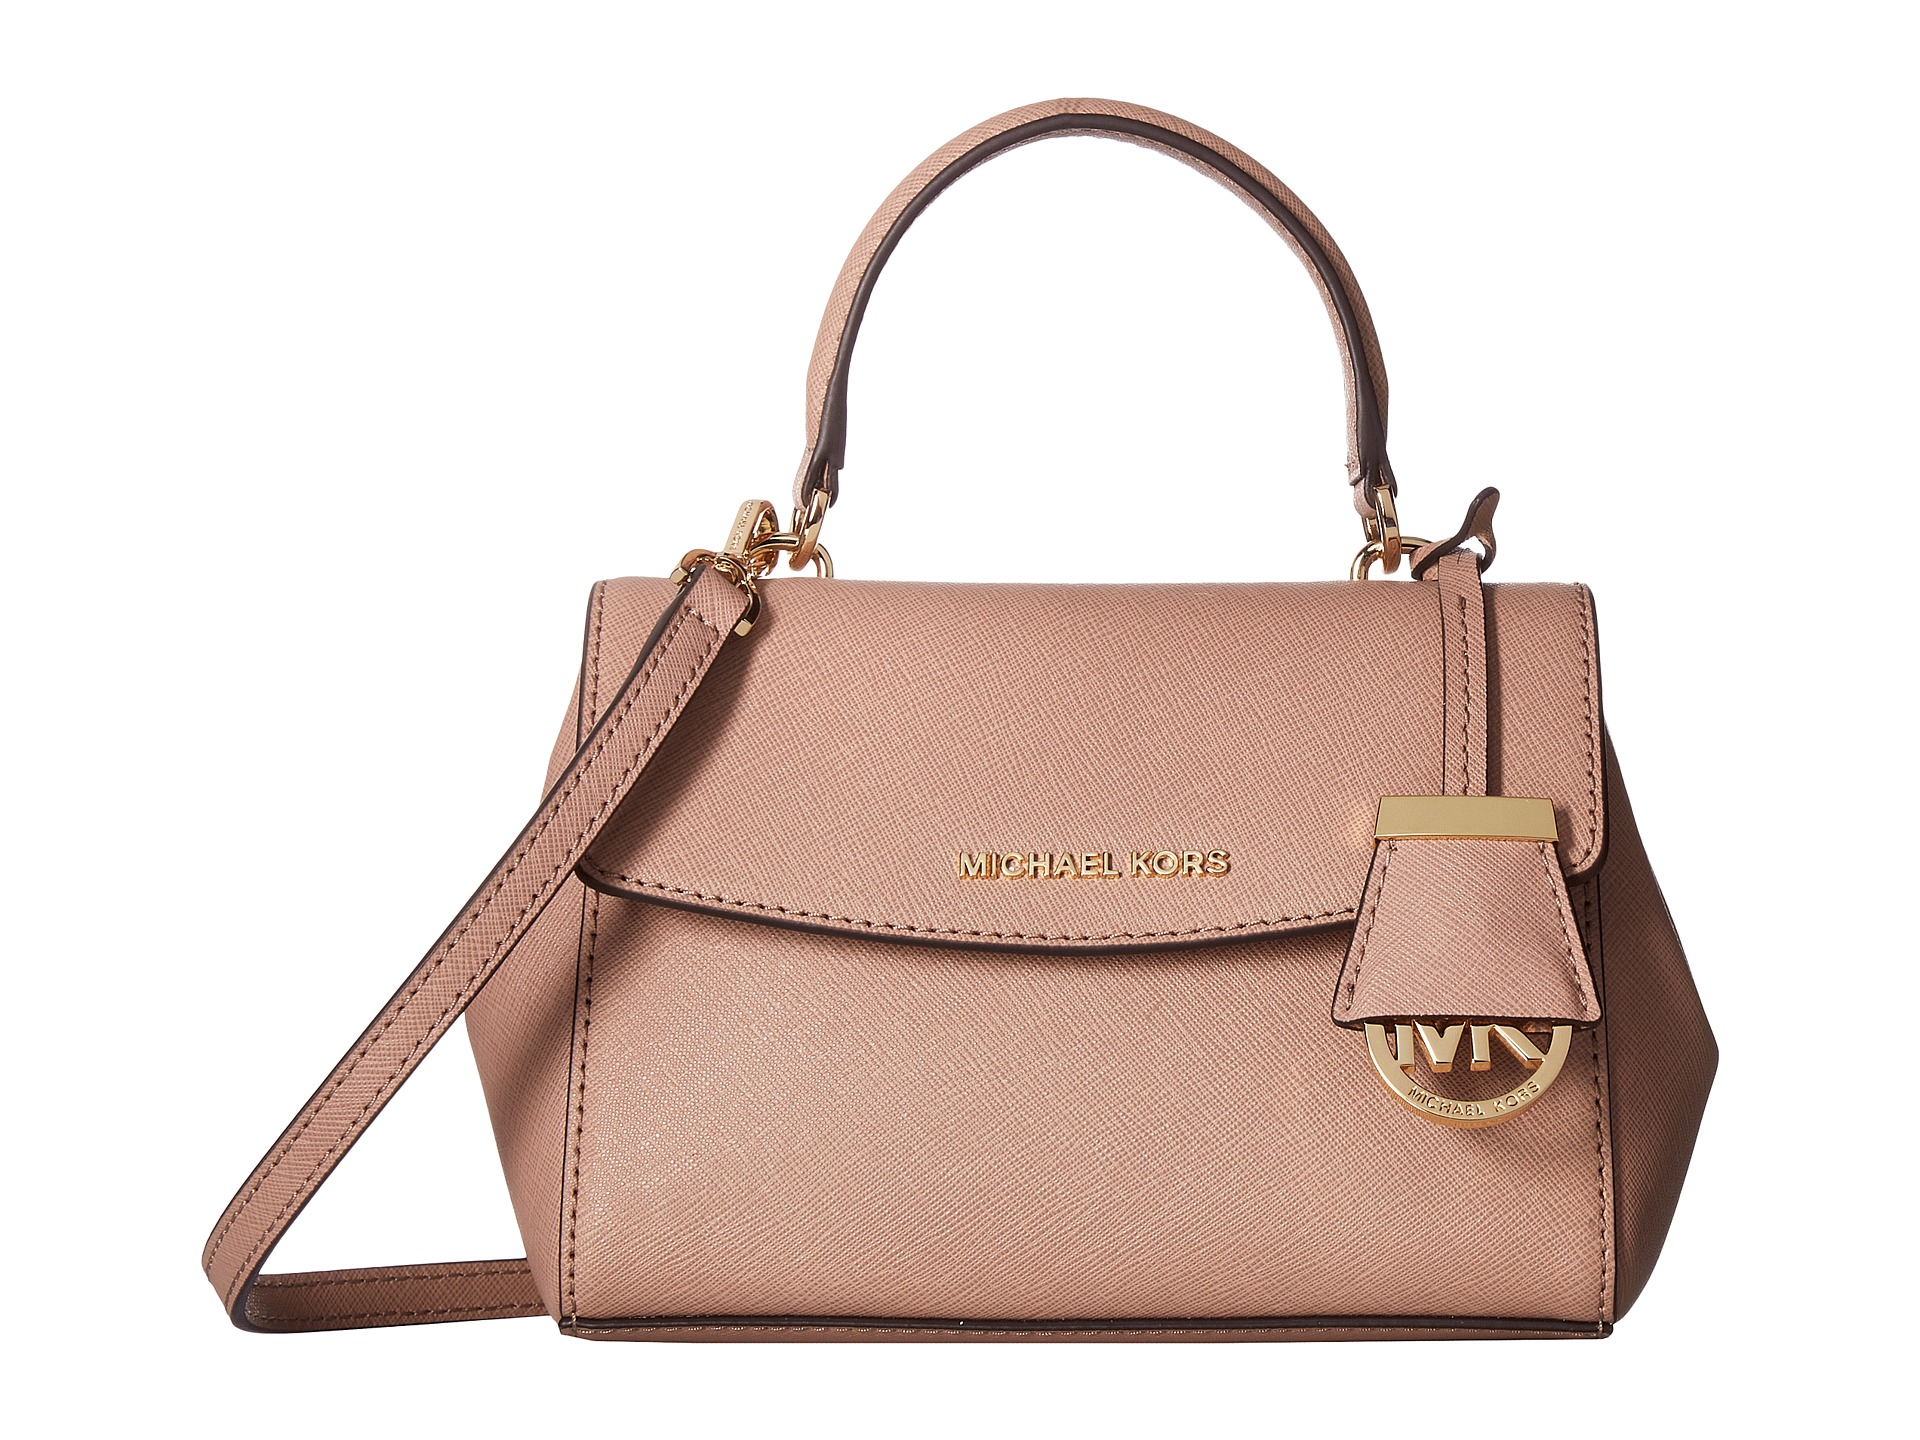 Michael Kors Crossbody Laukut : Michael kors ava extra small crossbody fawn